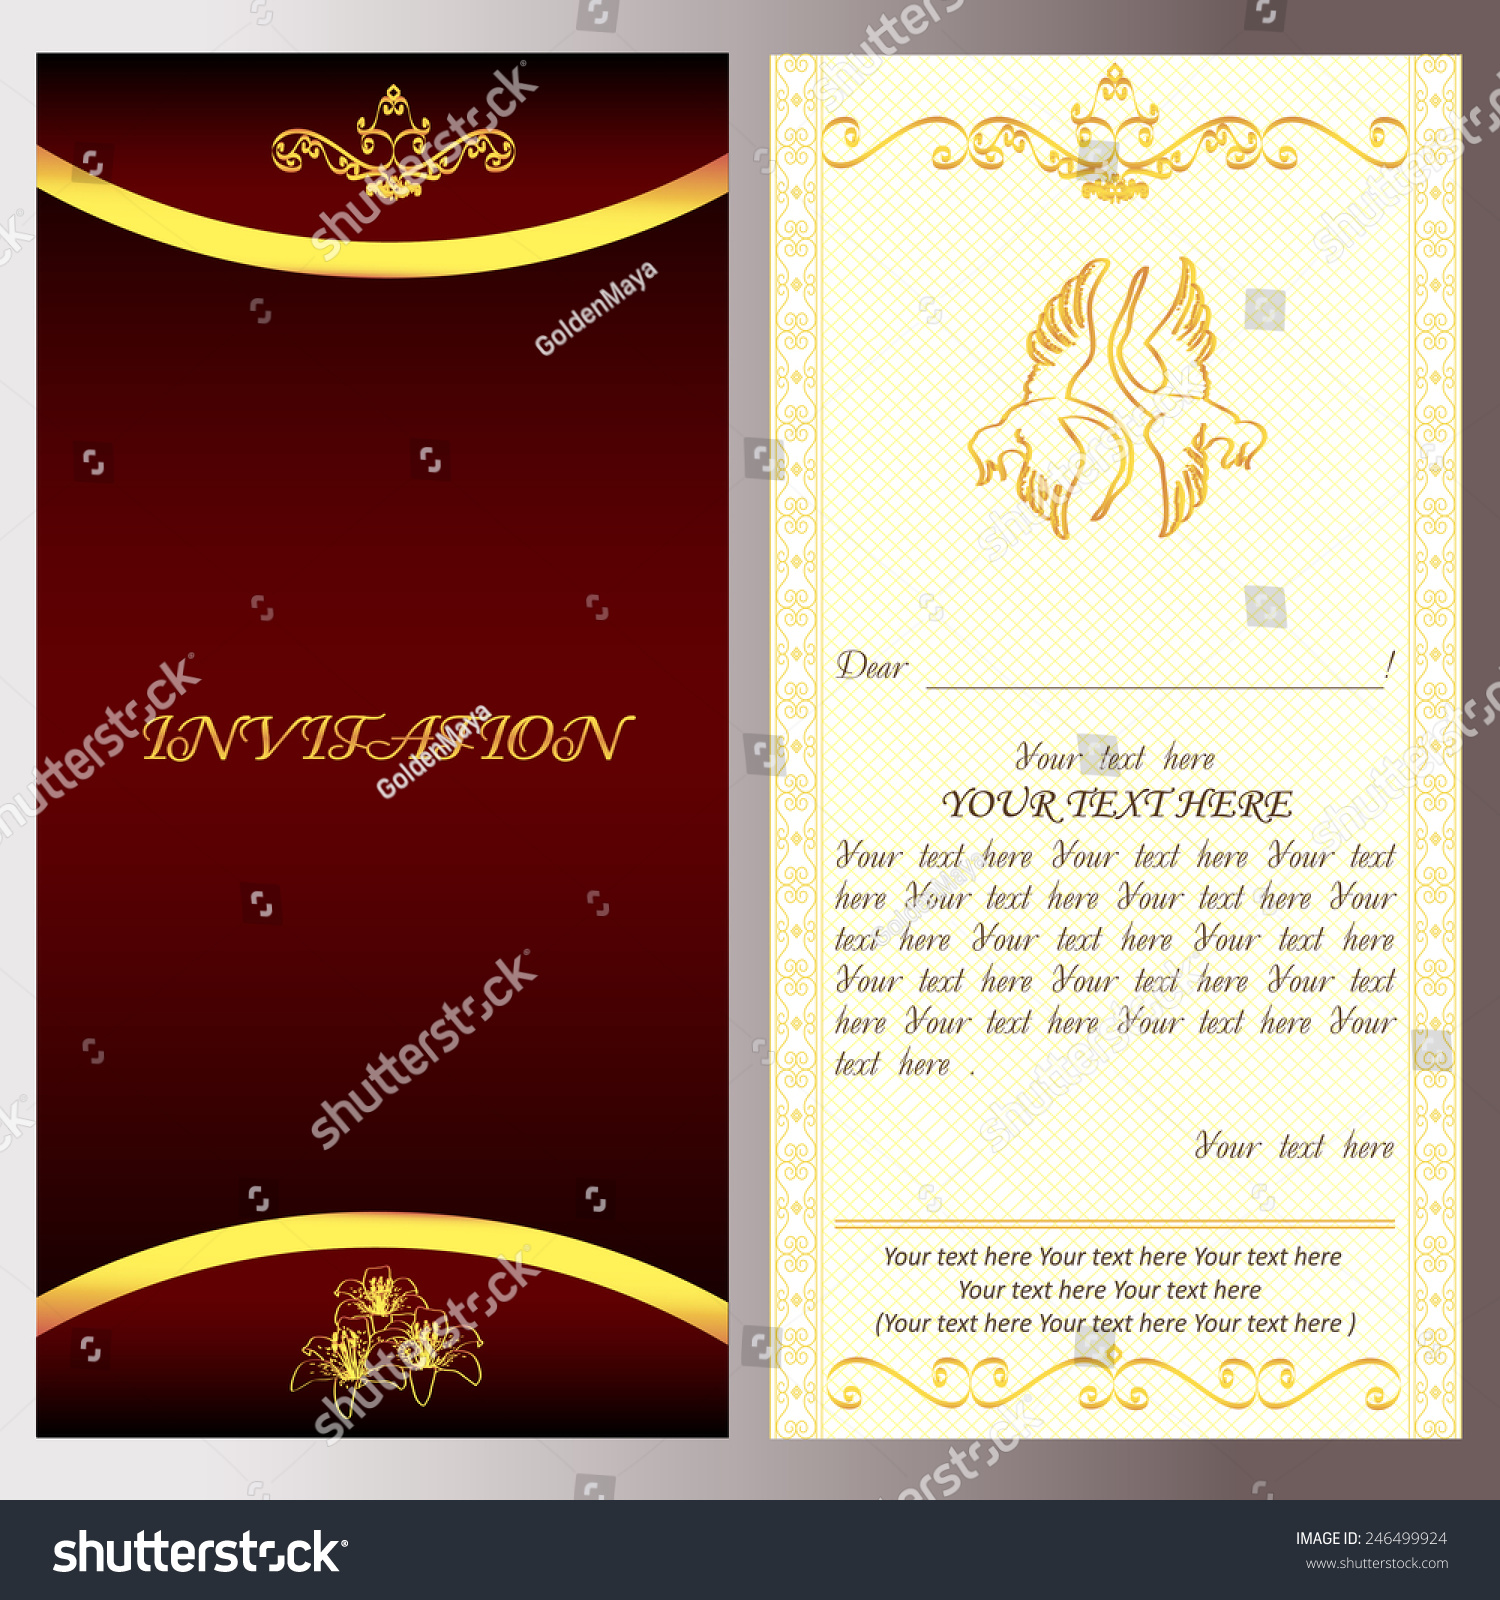 Golden Invitation Holiday Card Text Vector Stock Vector (Royalty ...